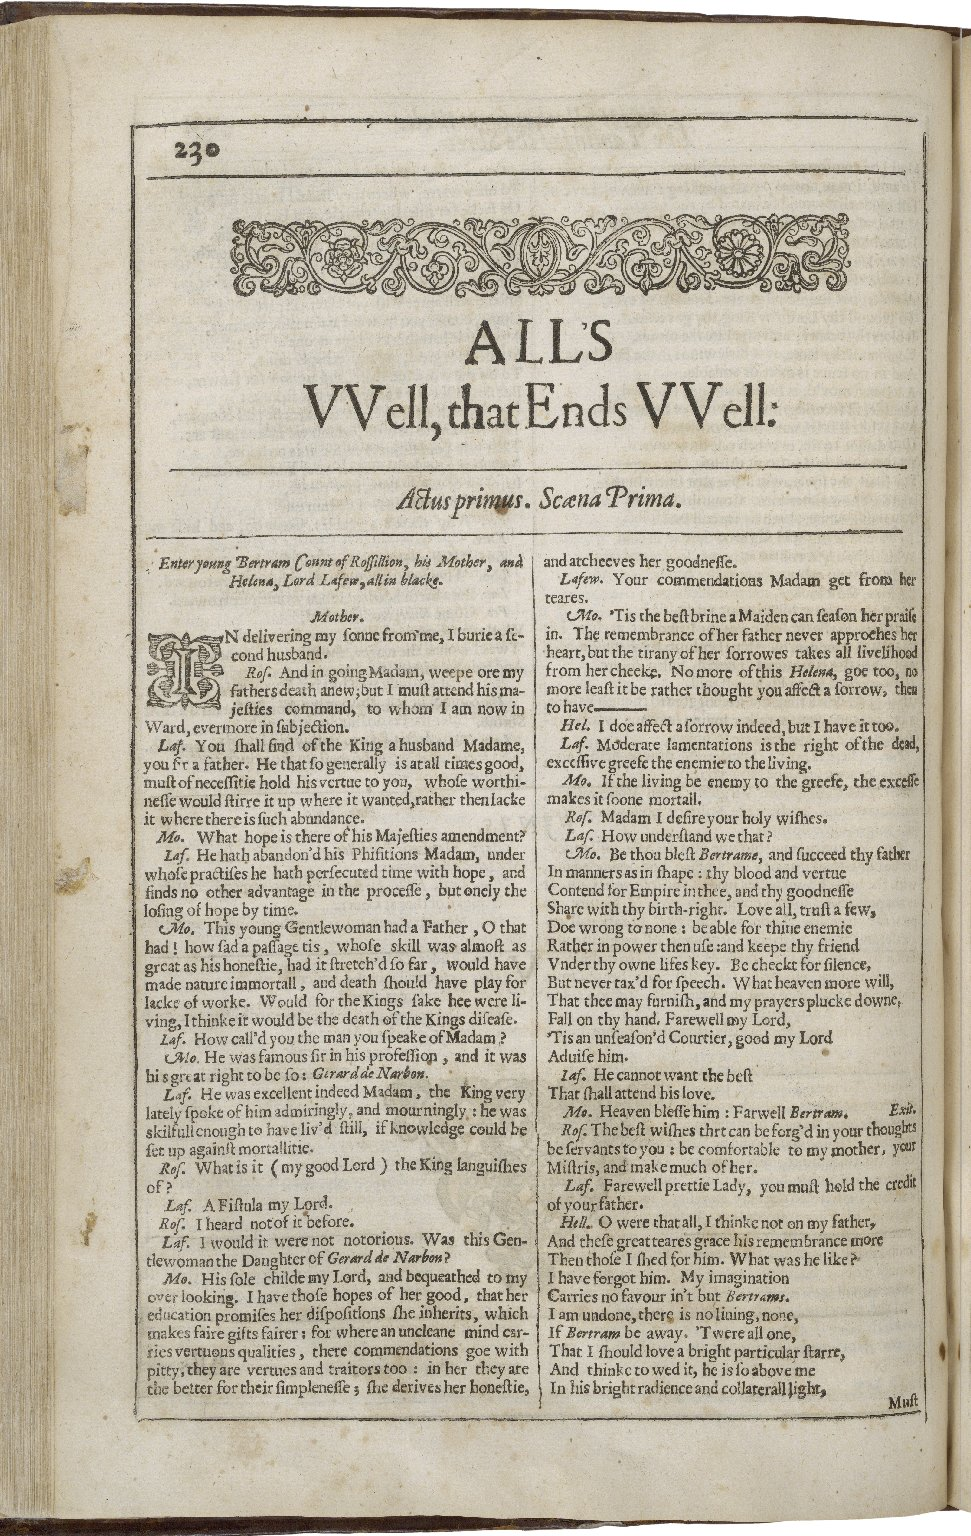 Opening page of the Second Folio edition of All's Well That Ends Well